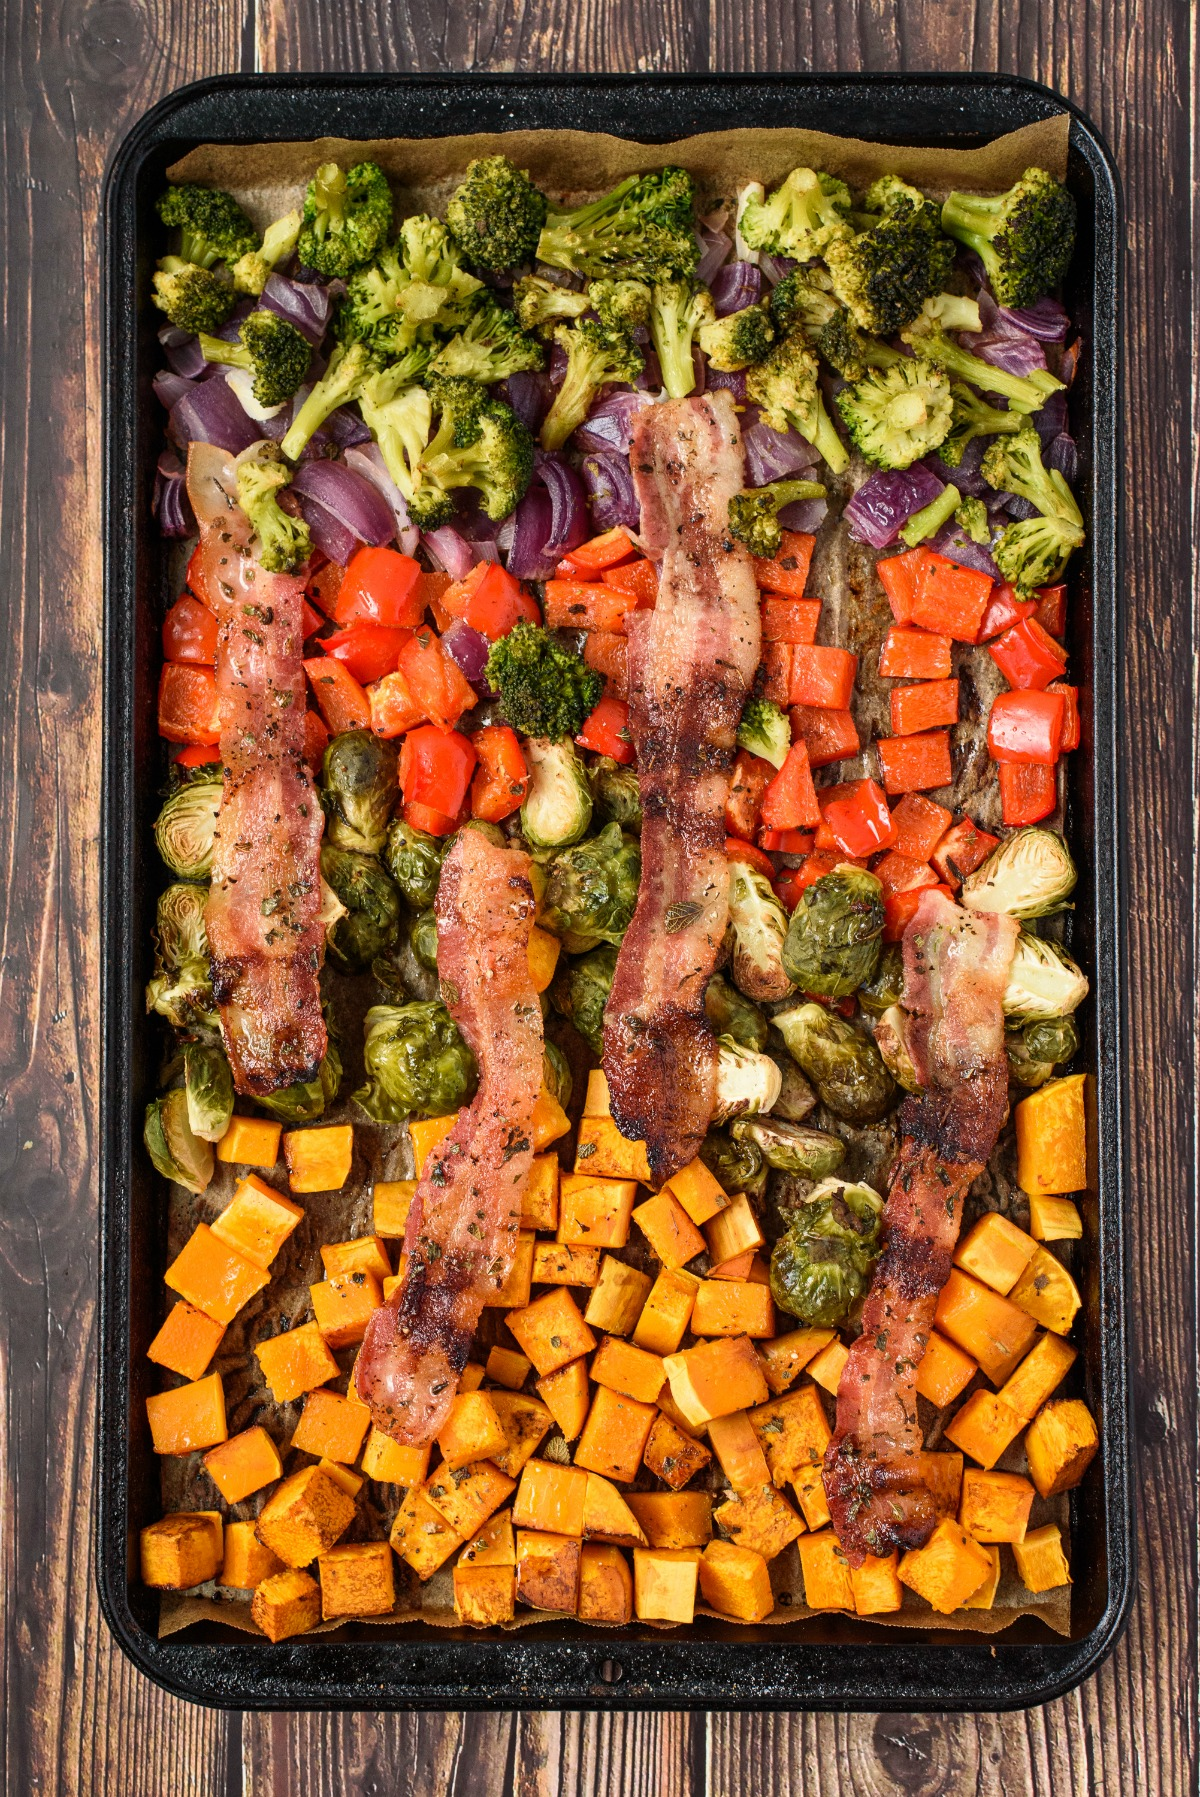 Sheet pan roasted vegetables with bacon.